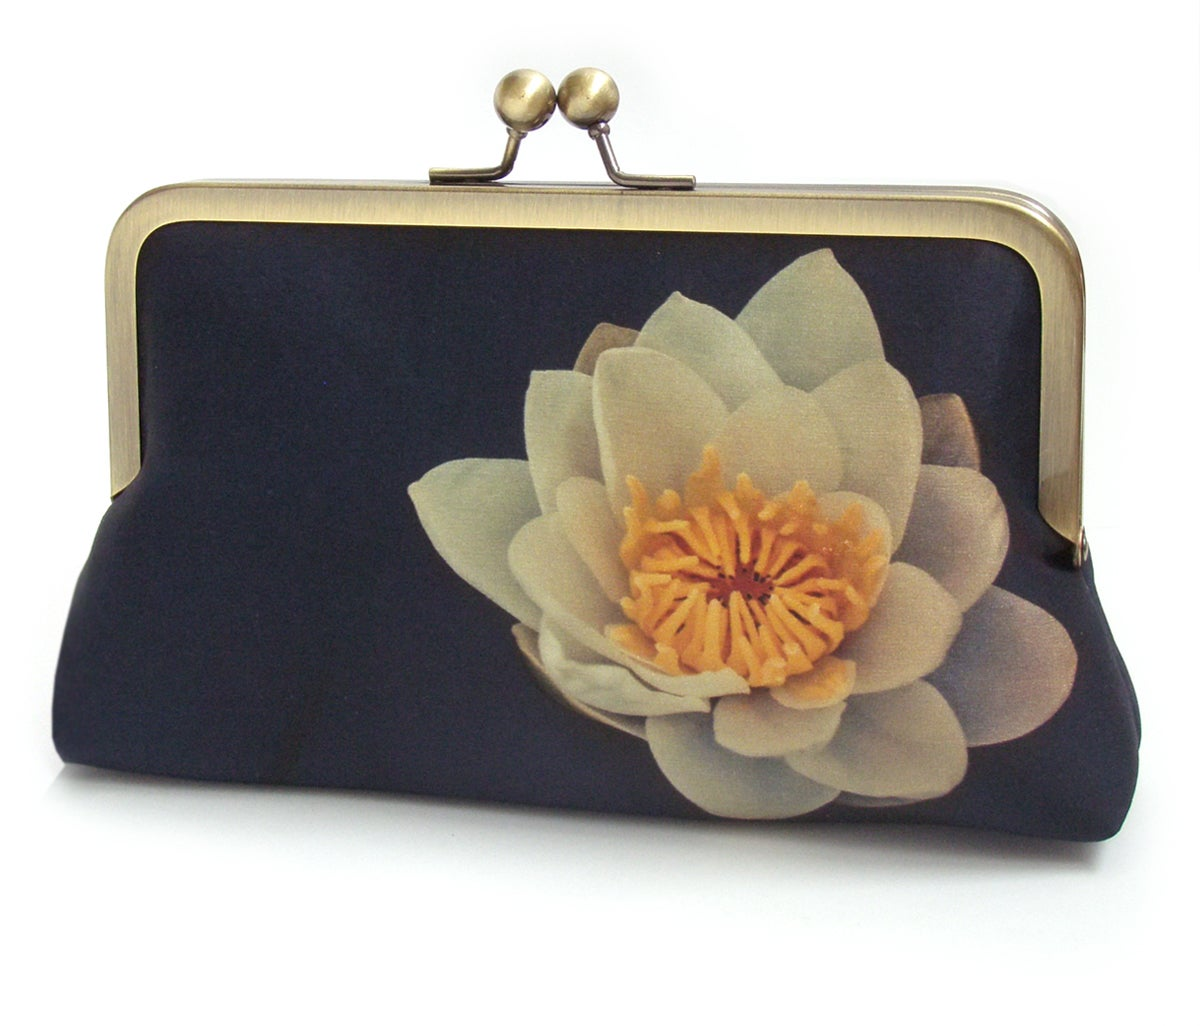 Image of Waterlily clutch bag, silk purse, lily flower handbag